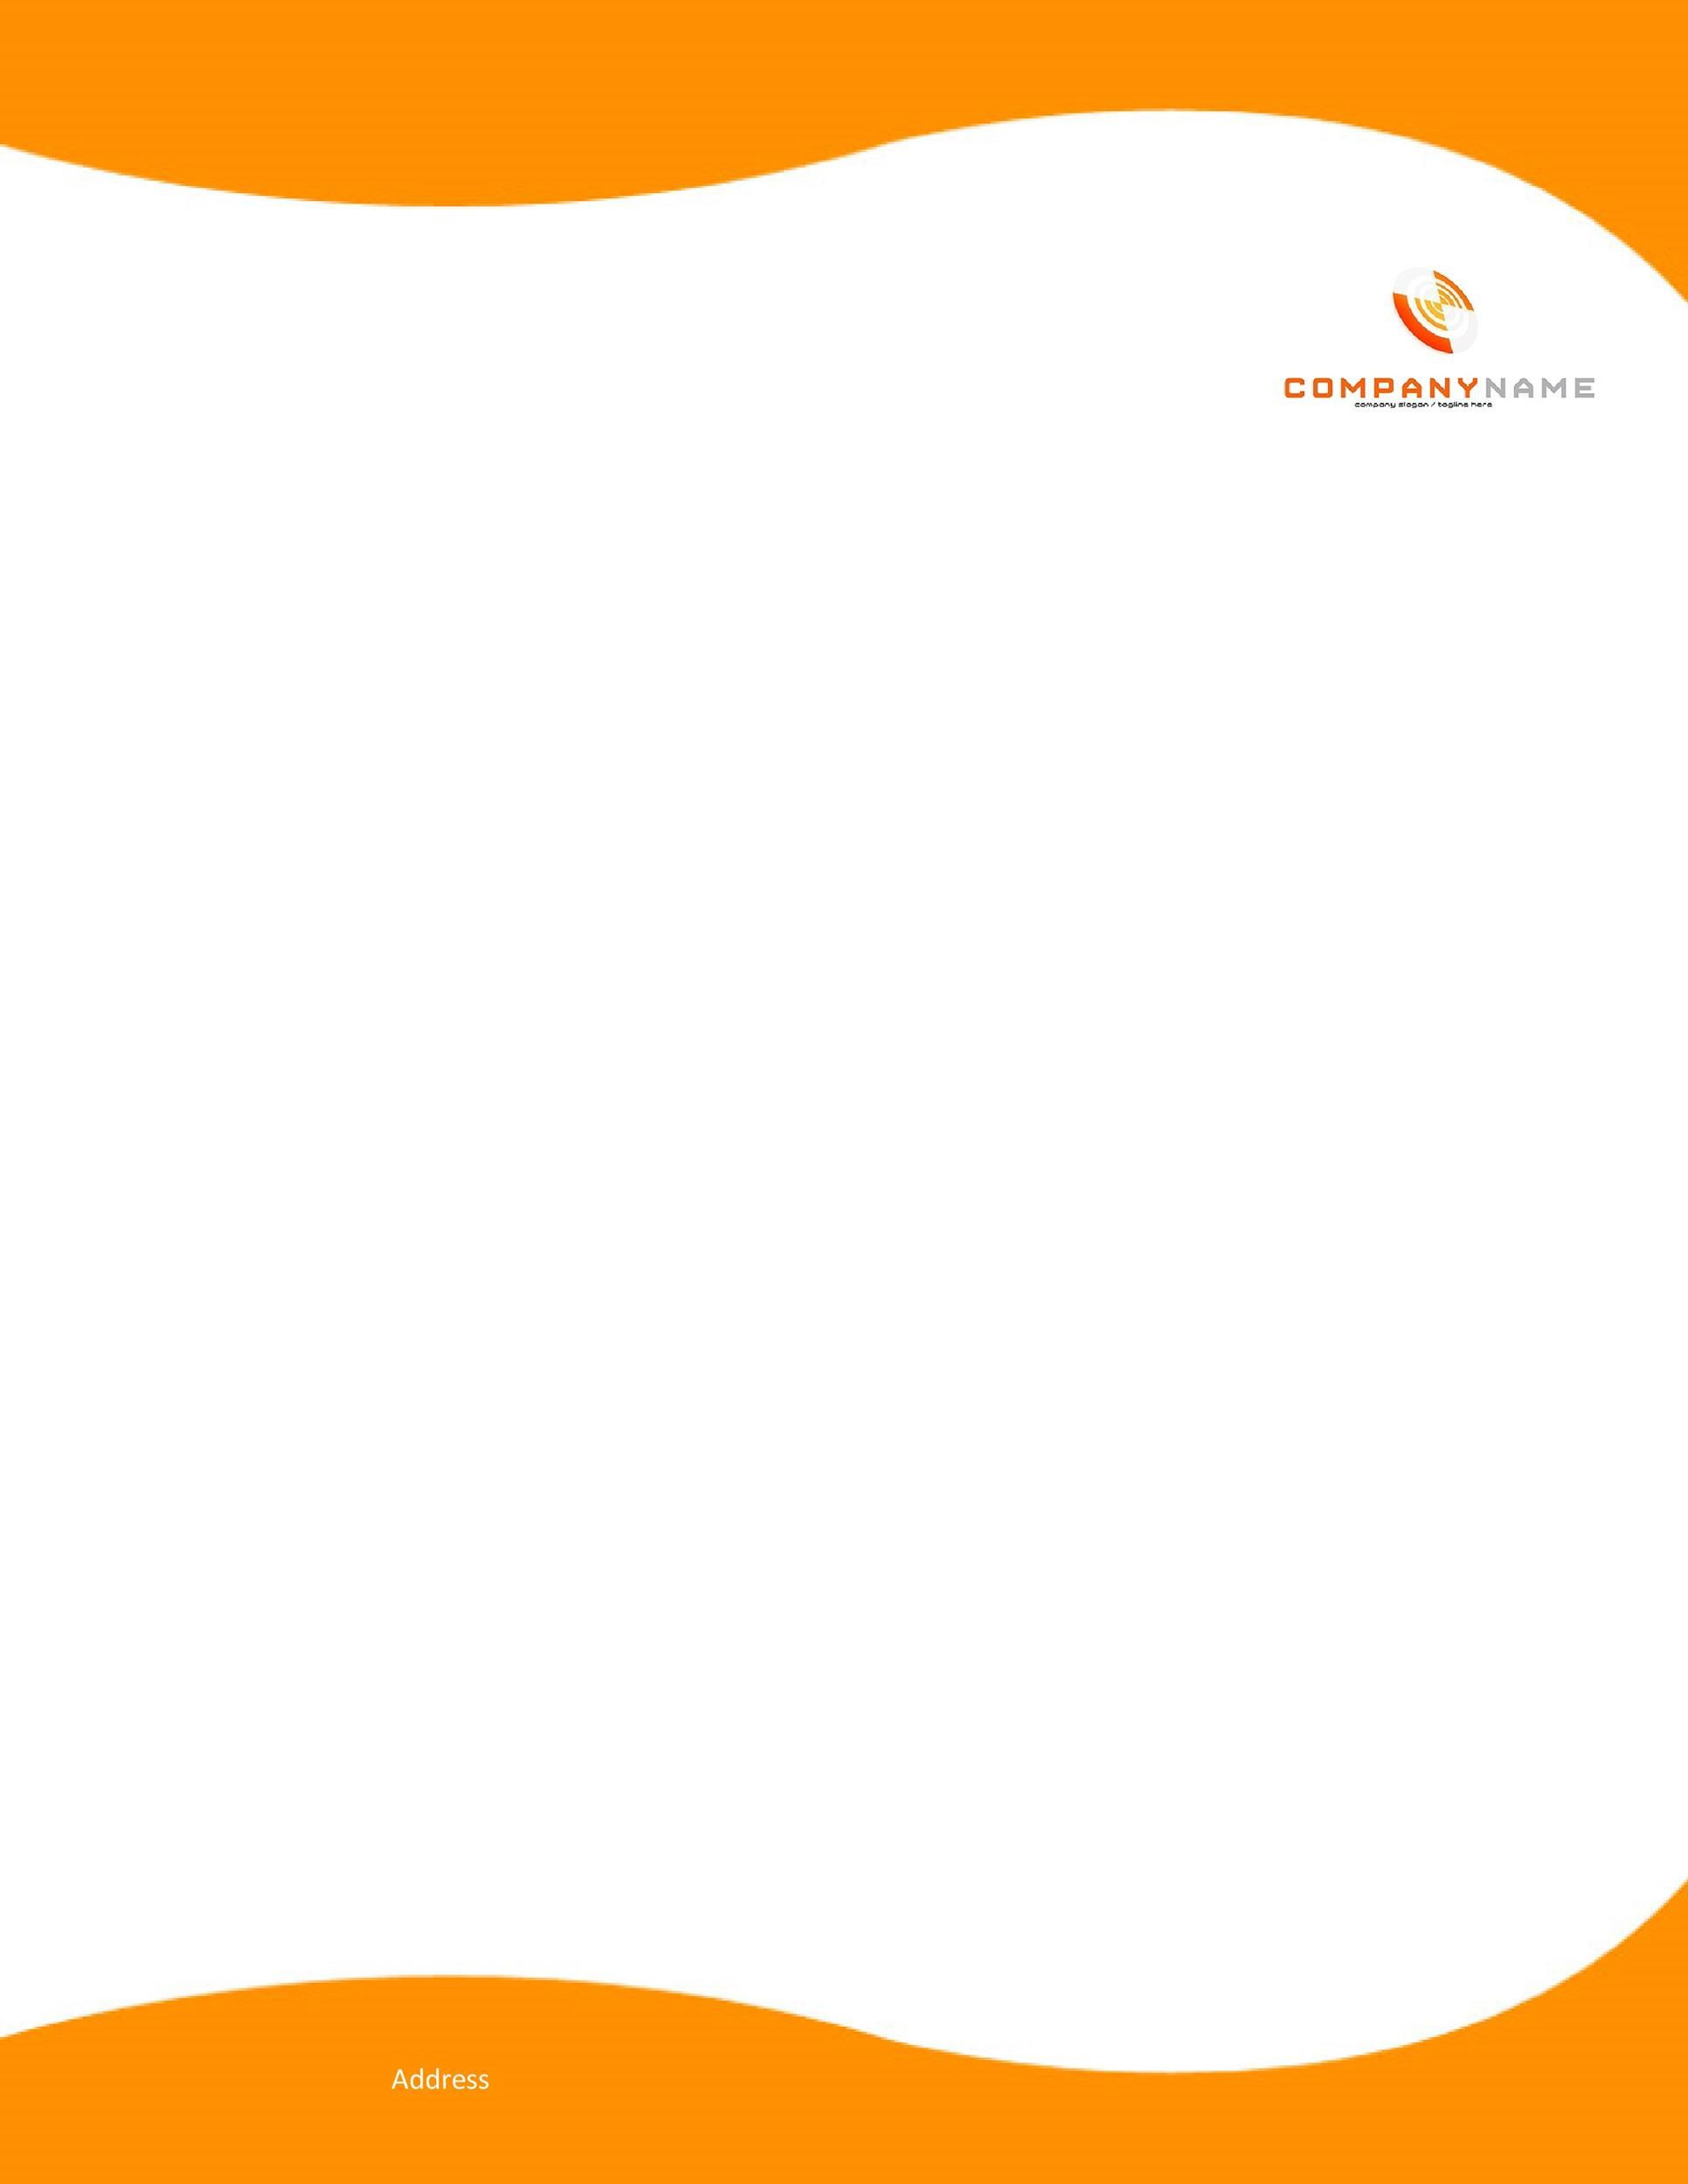 005 Unusual Letterhead Format In Word 2007 Free Download Highest Quality  Company TemplateFull